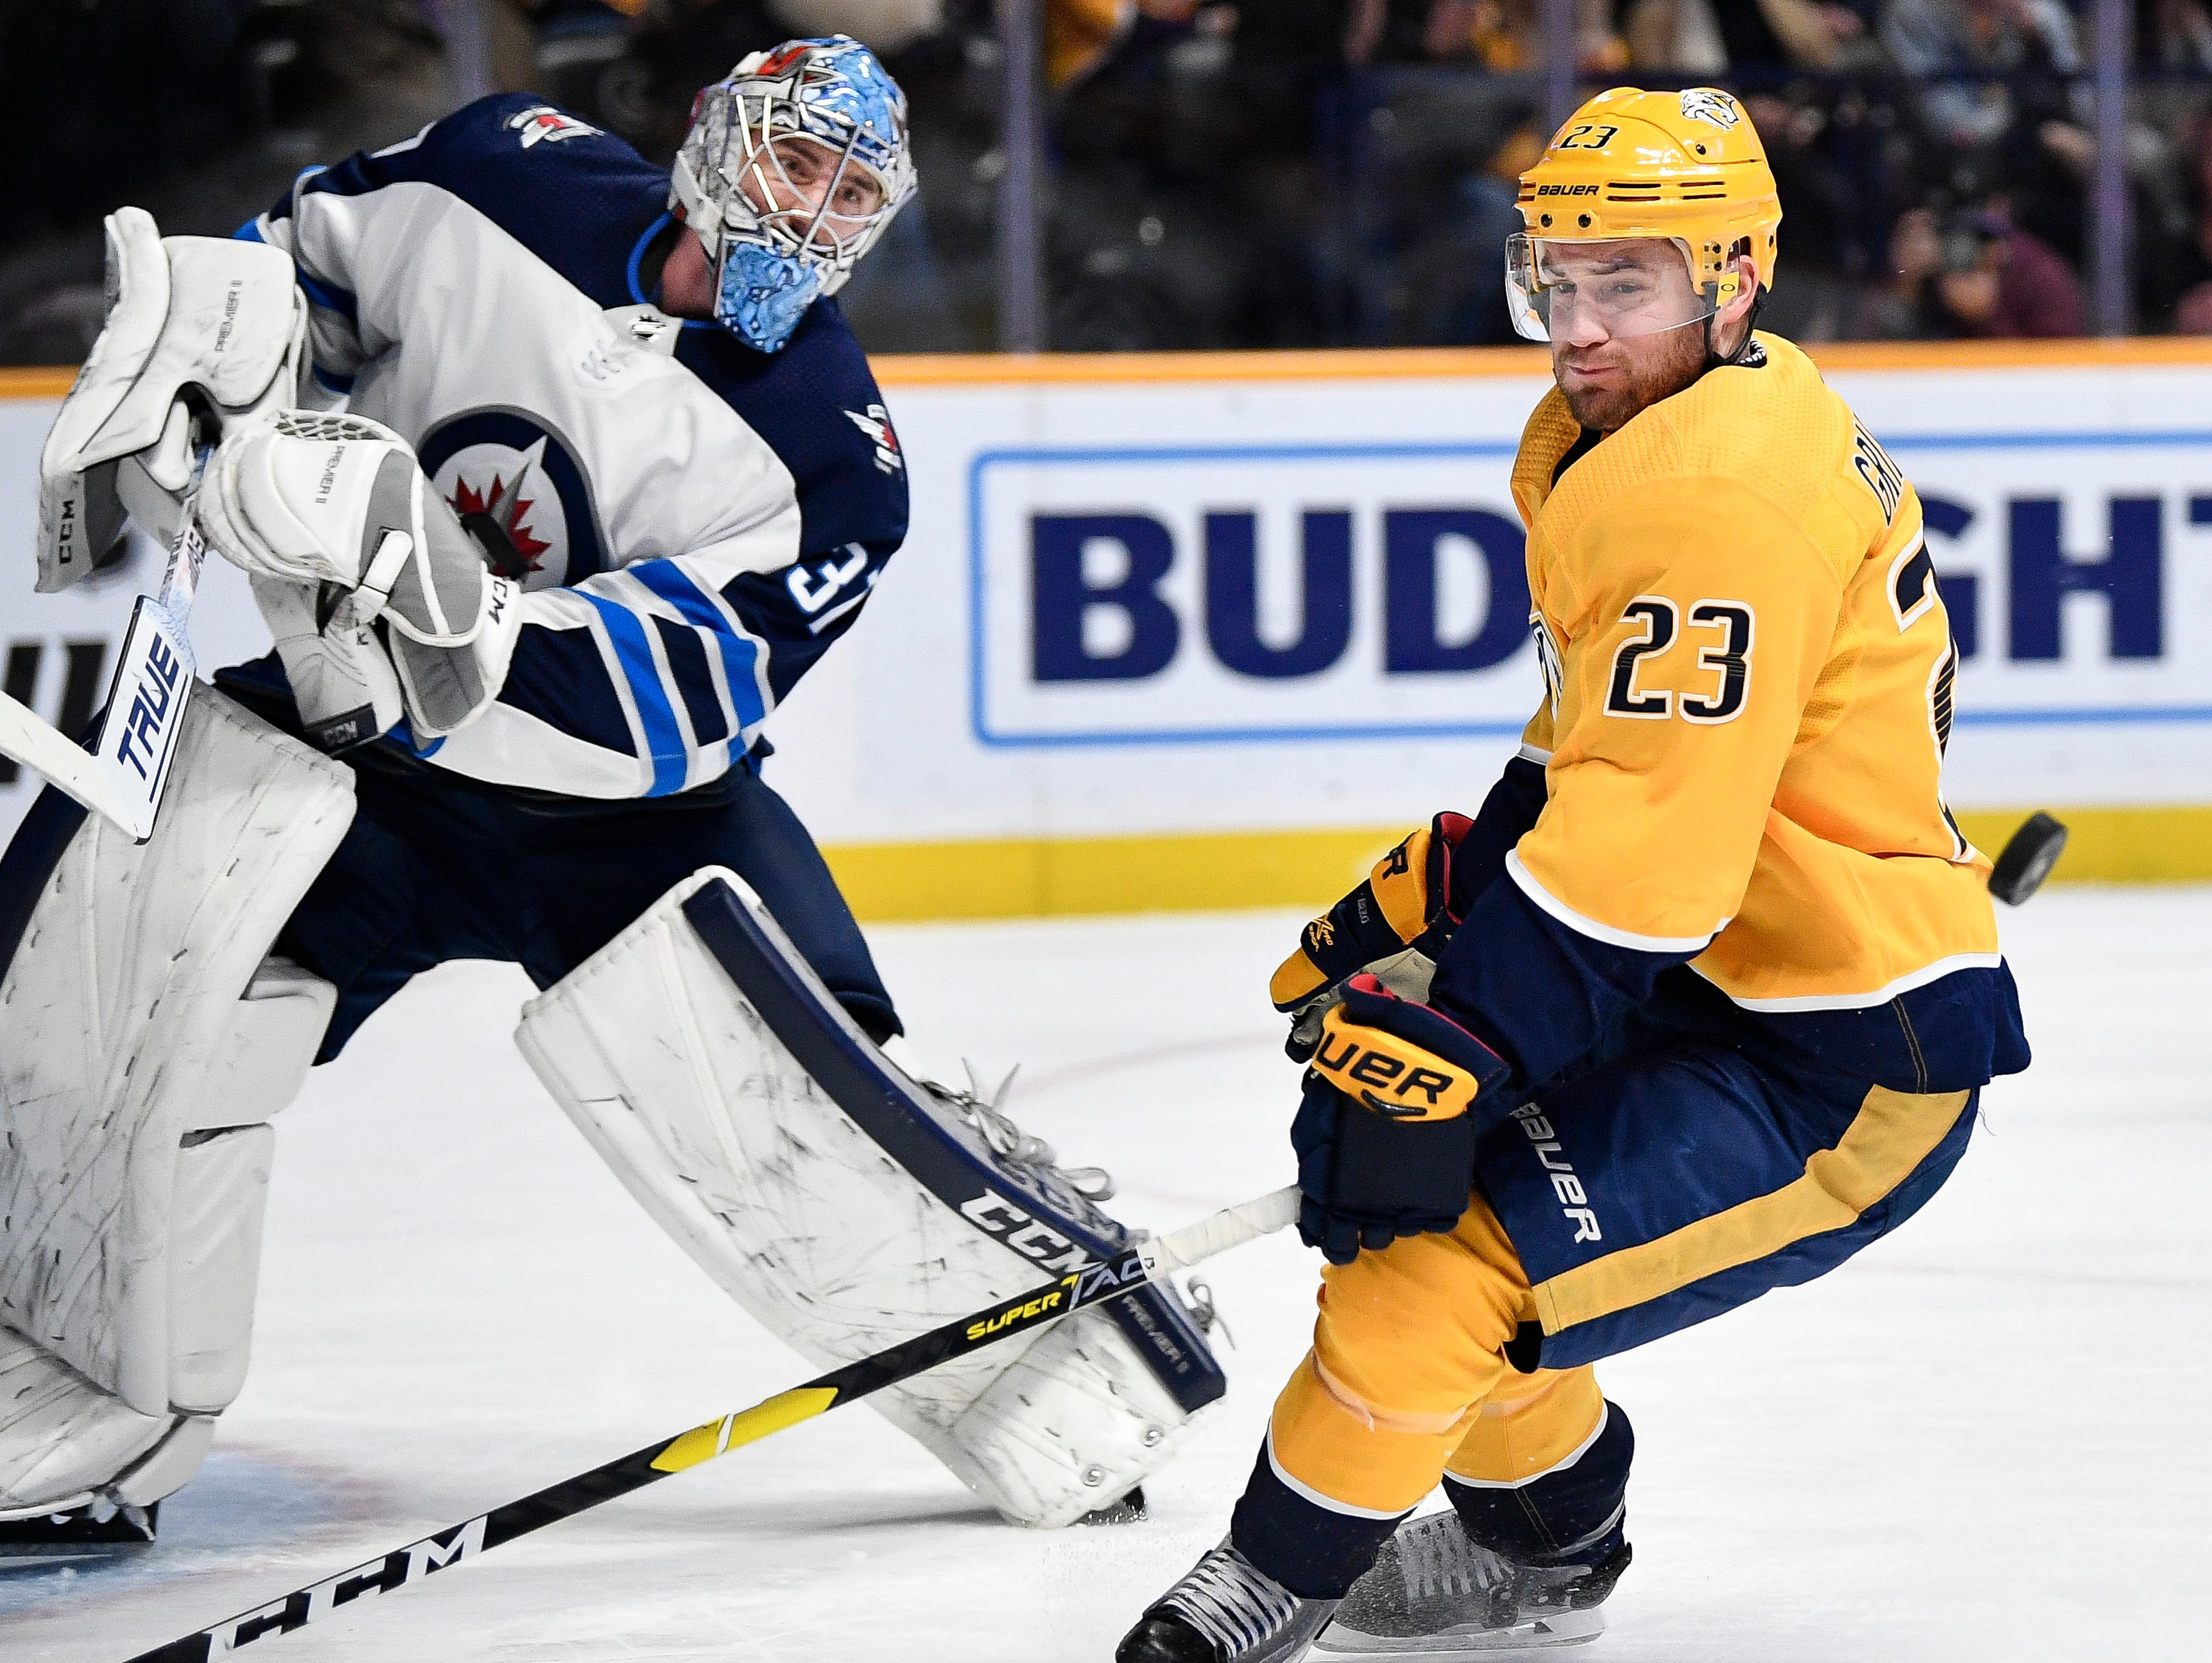 Winnipeg Jets goaltender Connor Hellebuyck (37) bats a shot away from Nashville Predators center Rocco Grimaldi (23) during the first period at Bridgestone Arena in Nashville, Tenn., Thursday, Jan. 17, 2019.